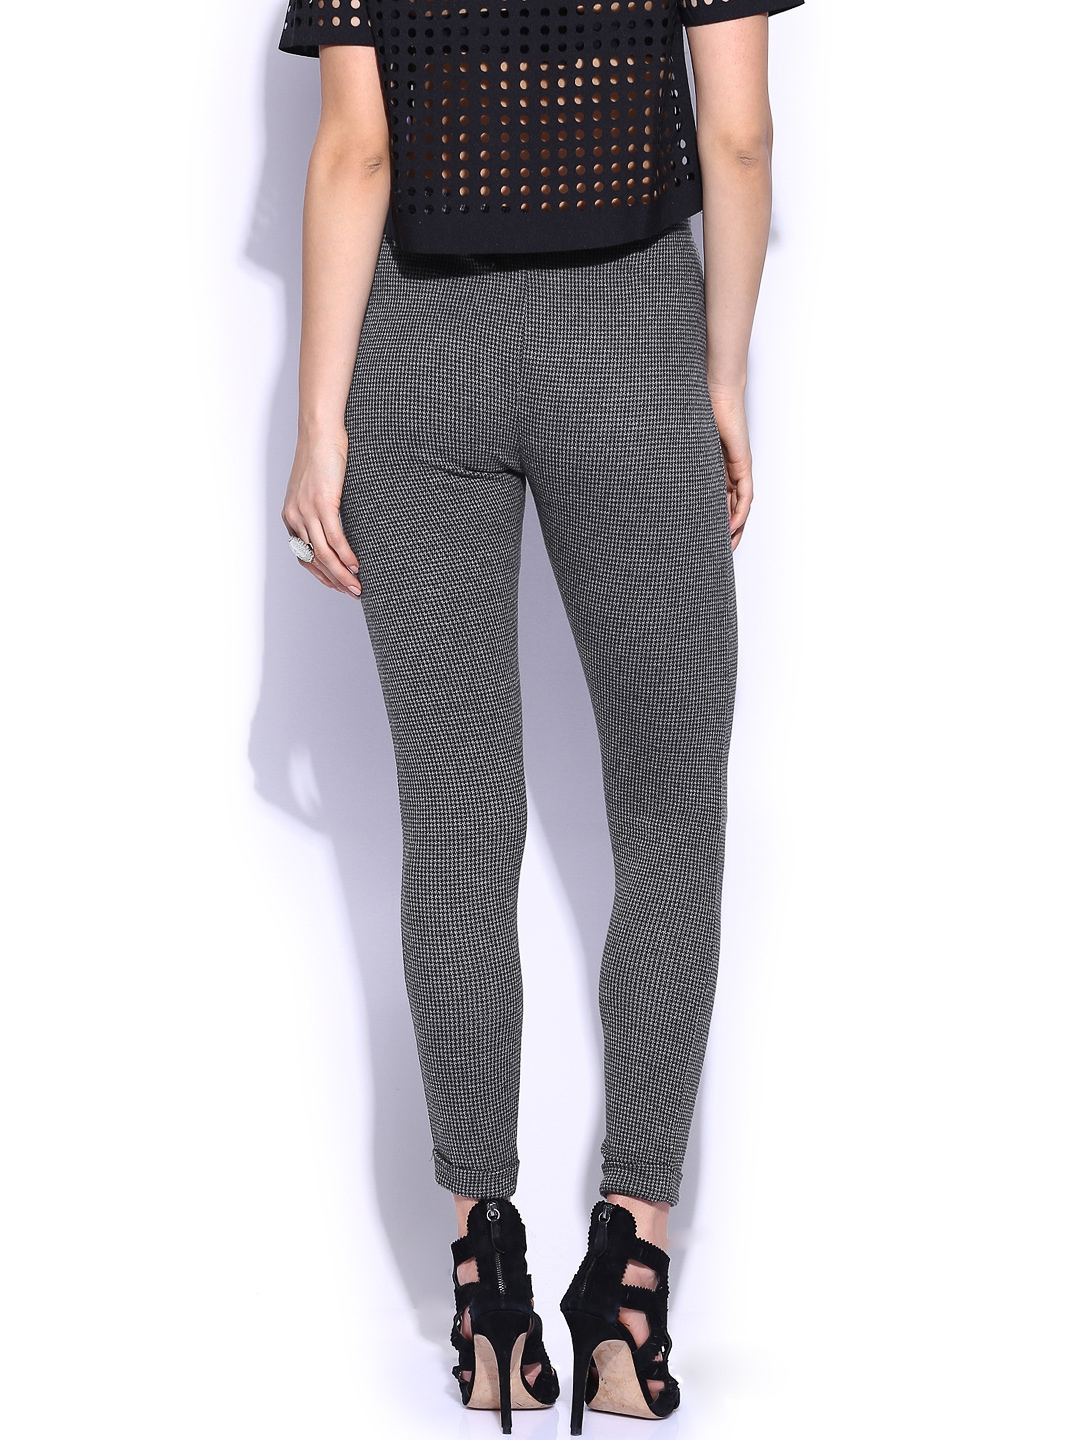 Leggings by New Look, A wardrobe staple, High-rise waist, Elasticated waistband, Bodycon fit, Holds you close. Transforming the coolest looks straight from the catwalk into wardrobe staples, New Look joins the ASOS round up of great British high street brands.